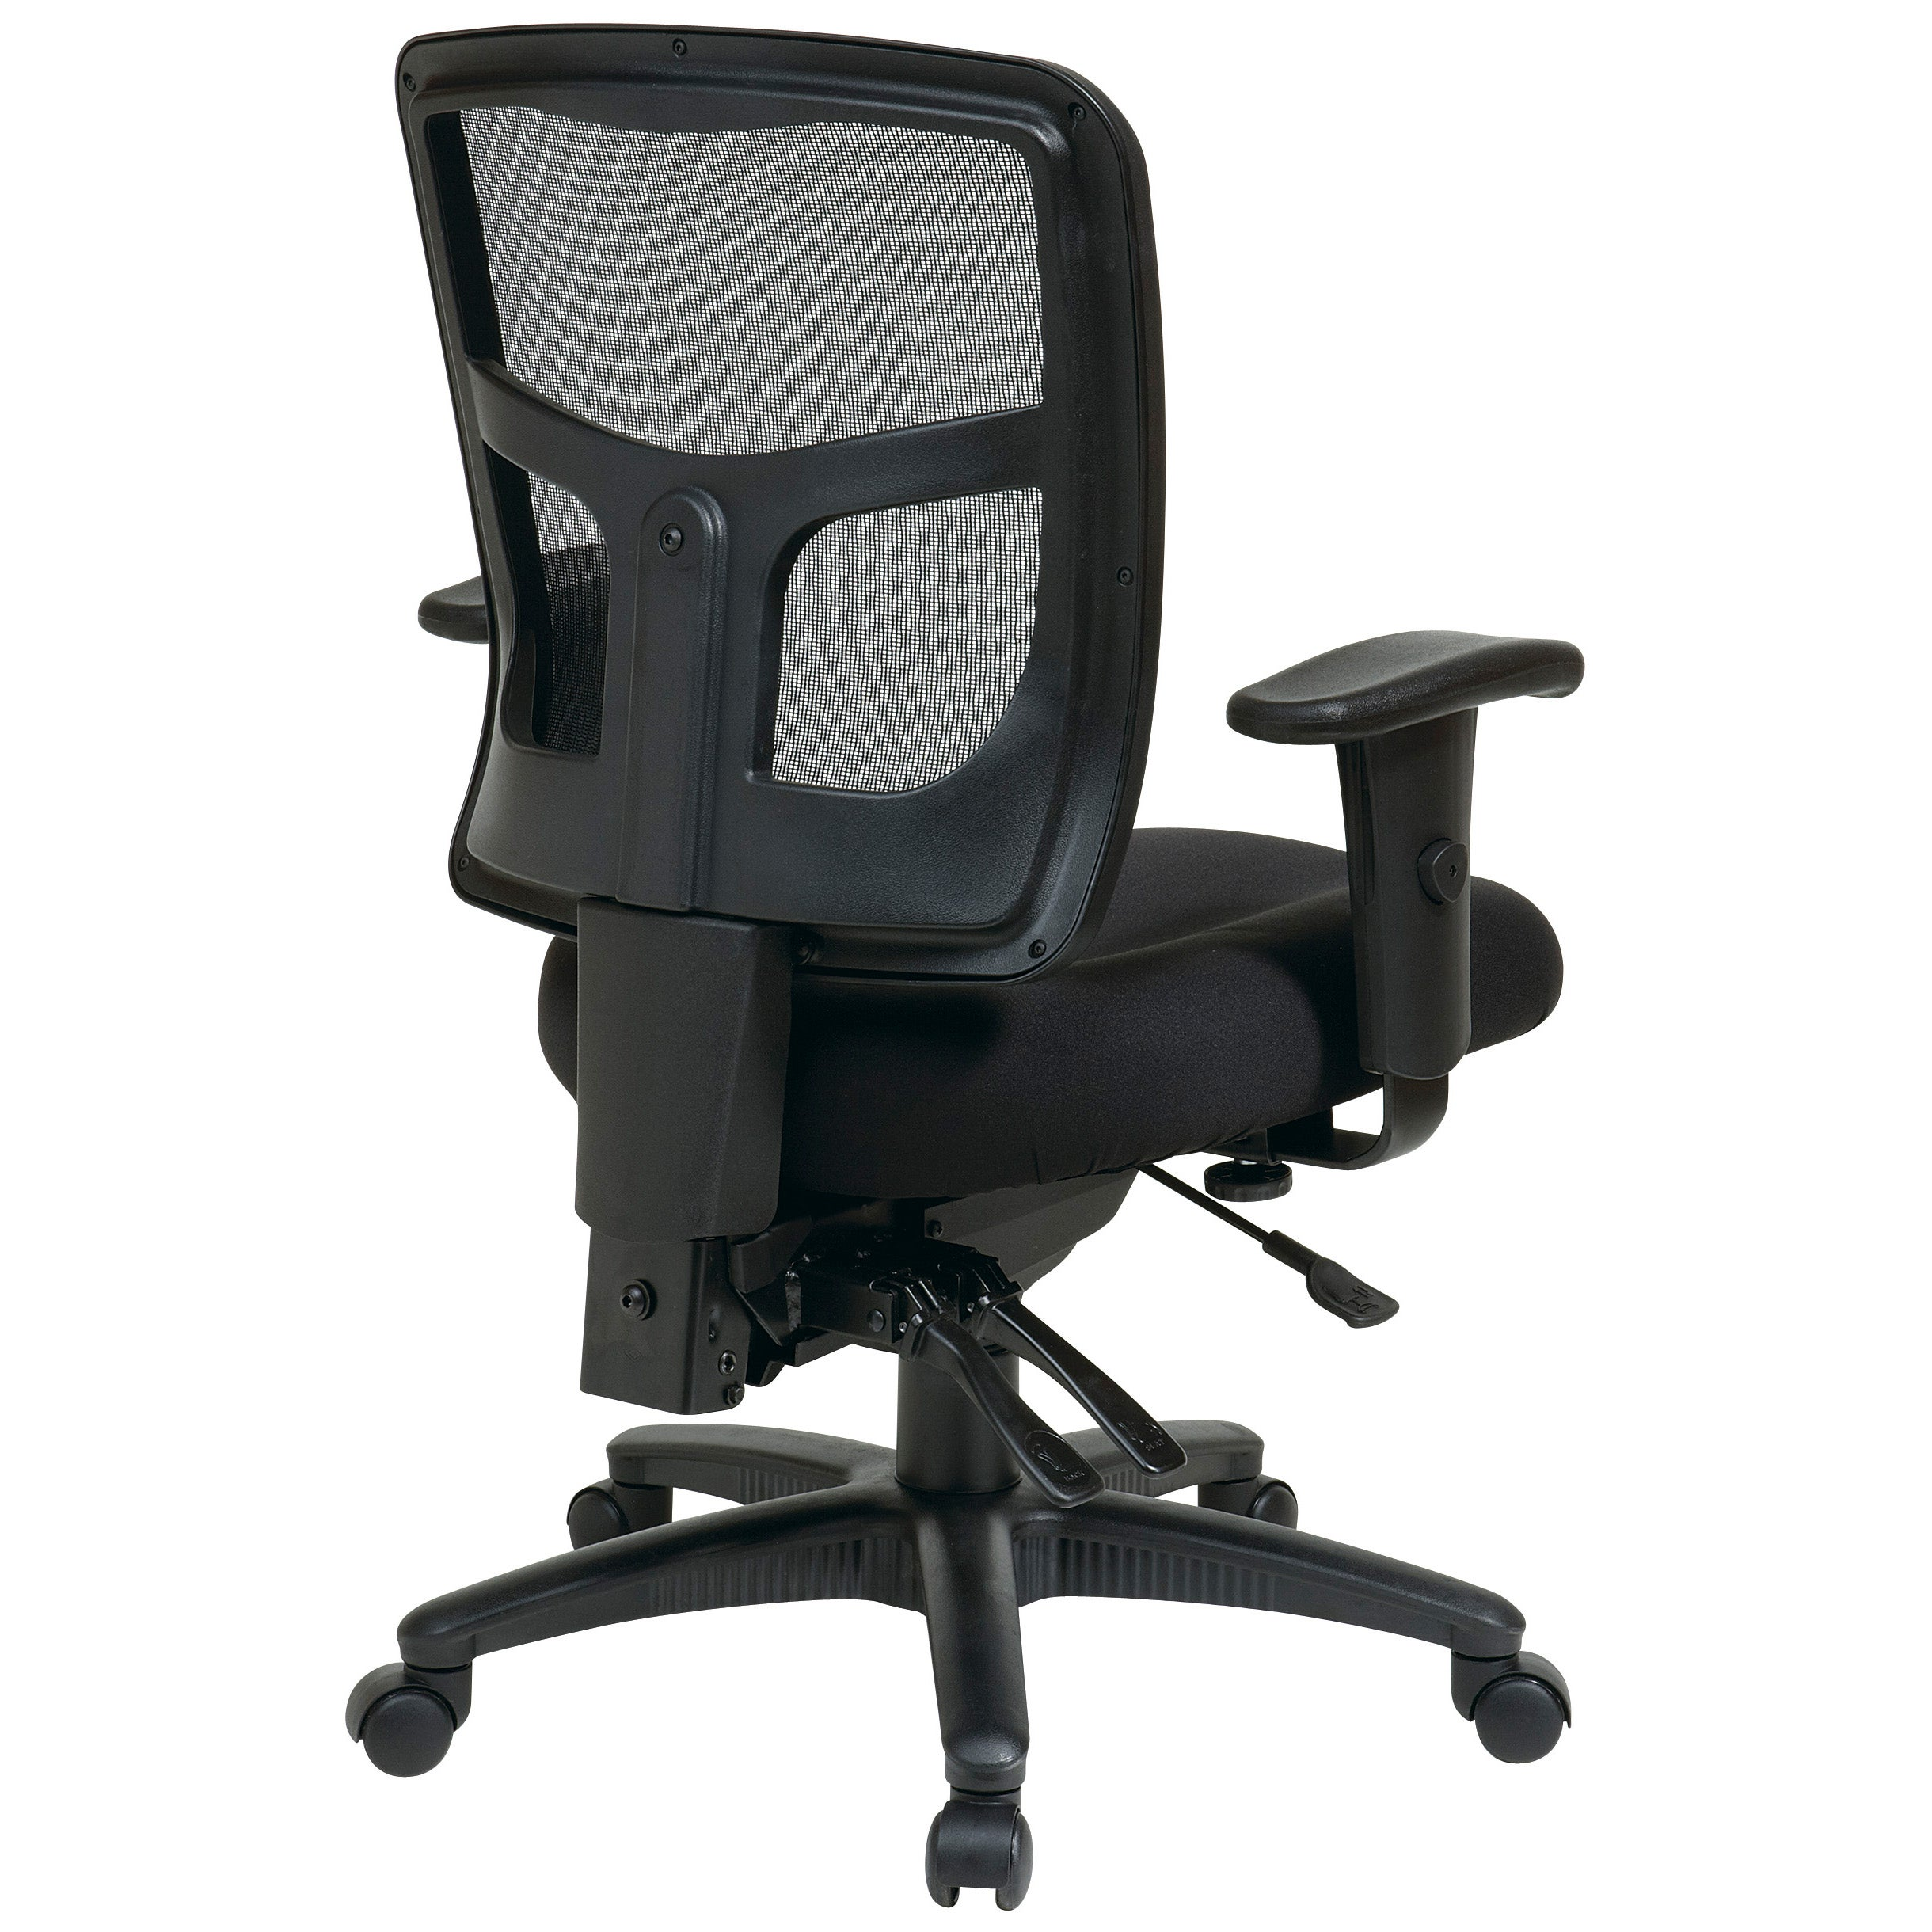 Charming Office Star Pro Line II Breathable ProGrid Ratchet Back Office Chair   Free  Shipping Today   Overstock.com   15354508